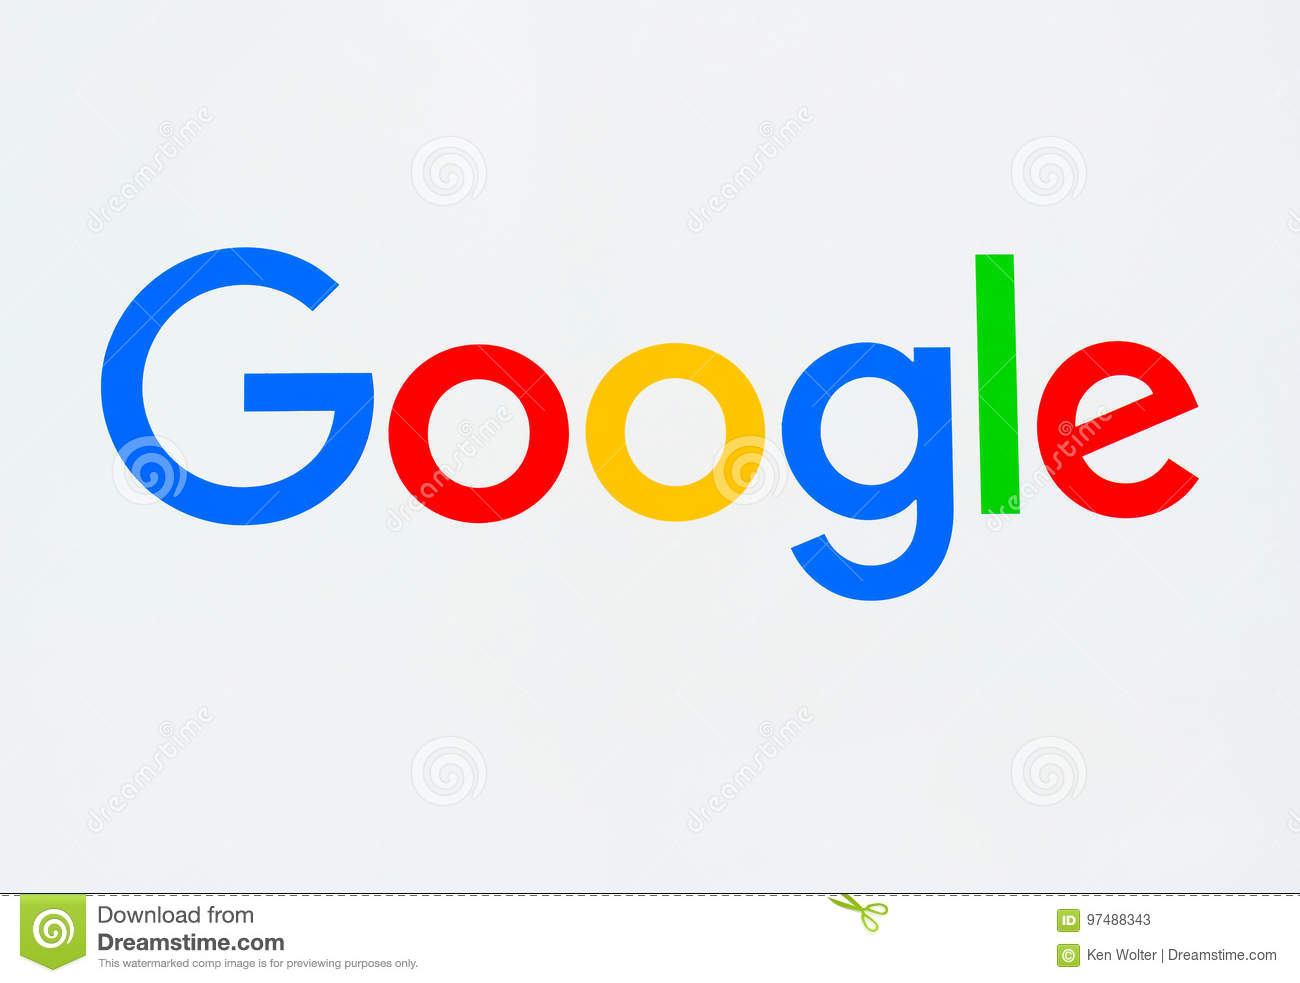 Sedi corporative e logo di Google